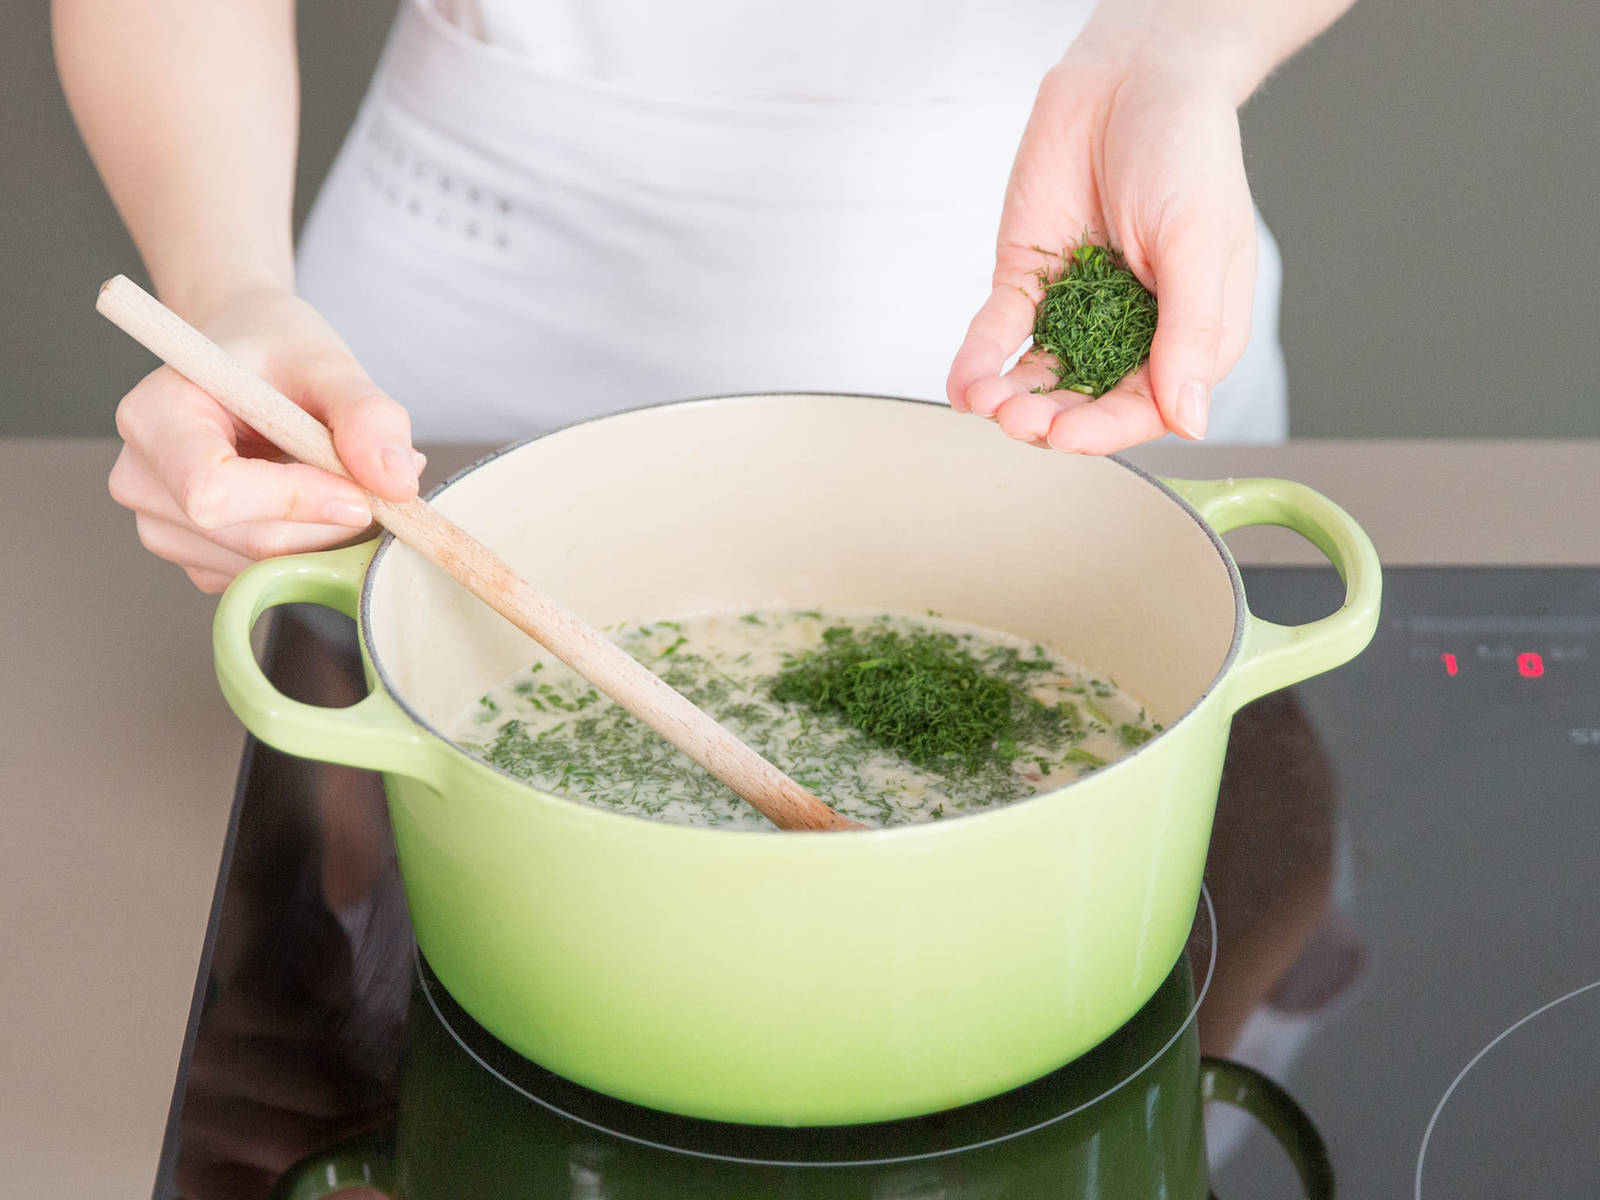 Add clams, parsley, dill, and freshly grated nutmeg to taste. Season to taste with lemon juice, salt, and pepper. Enjoy!